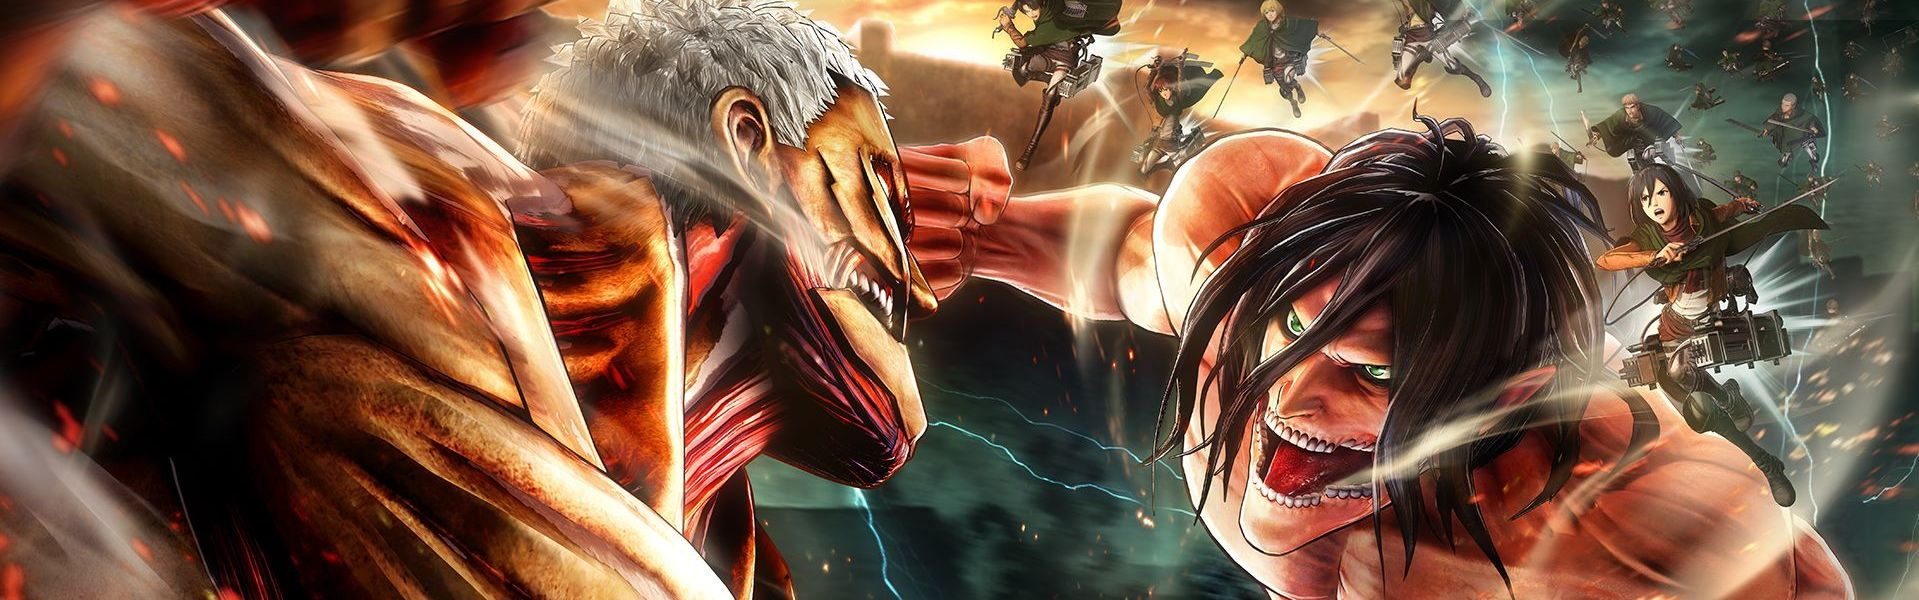 Attack on Titan 2 - A.O.T.2  Steam Key GLOBAL